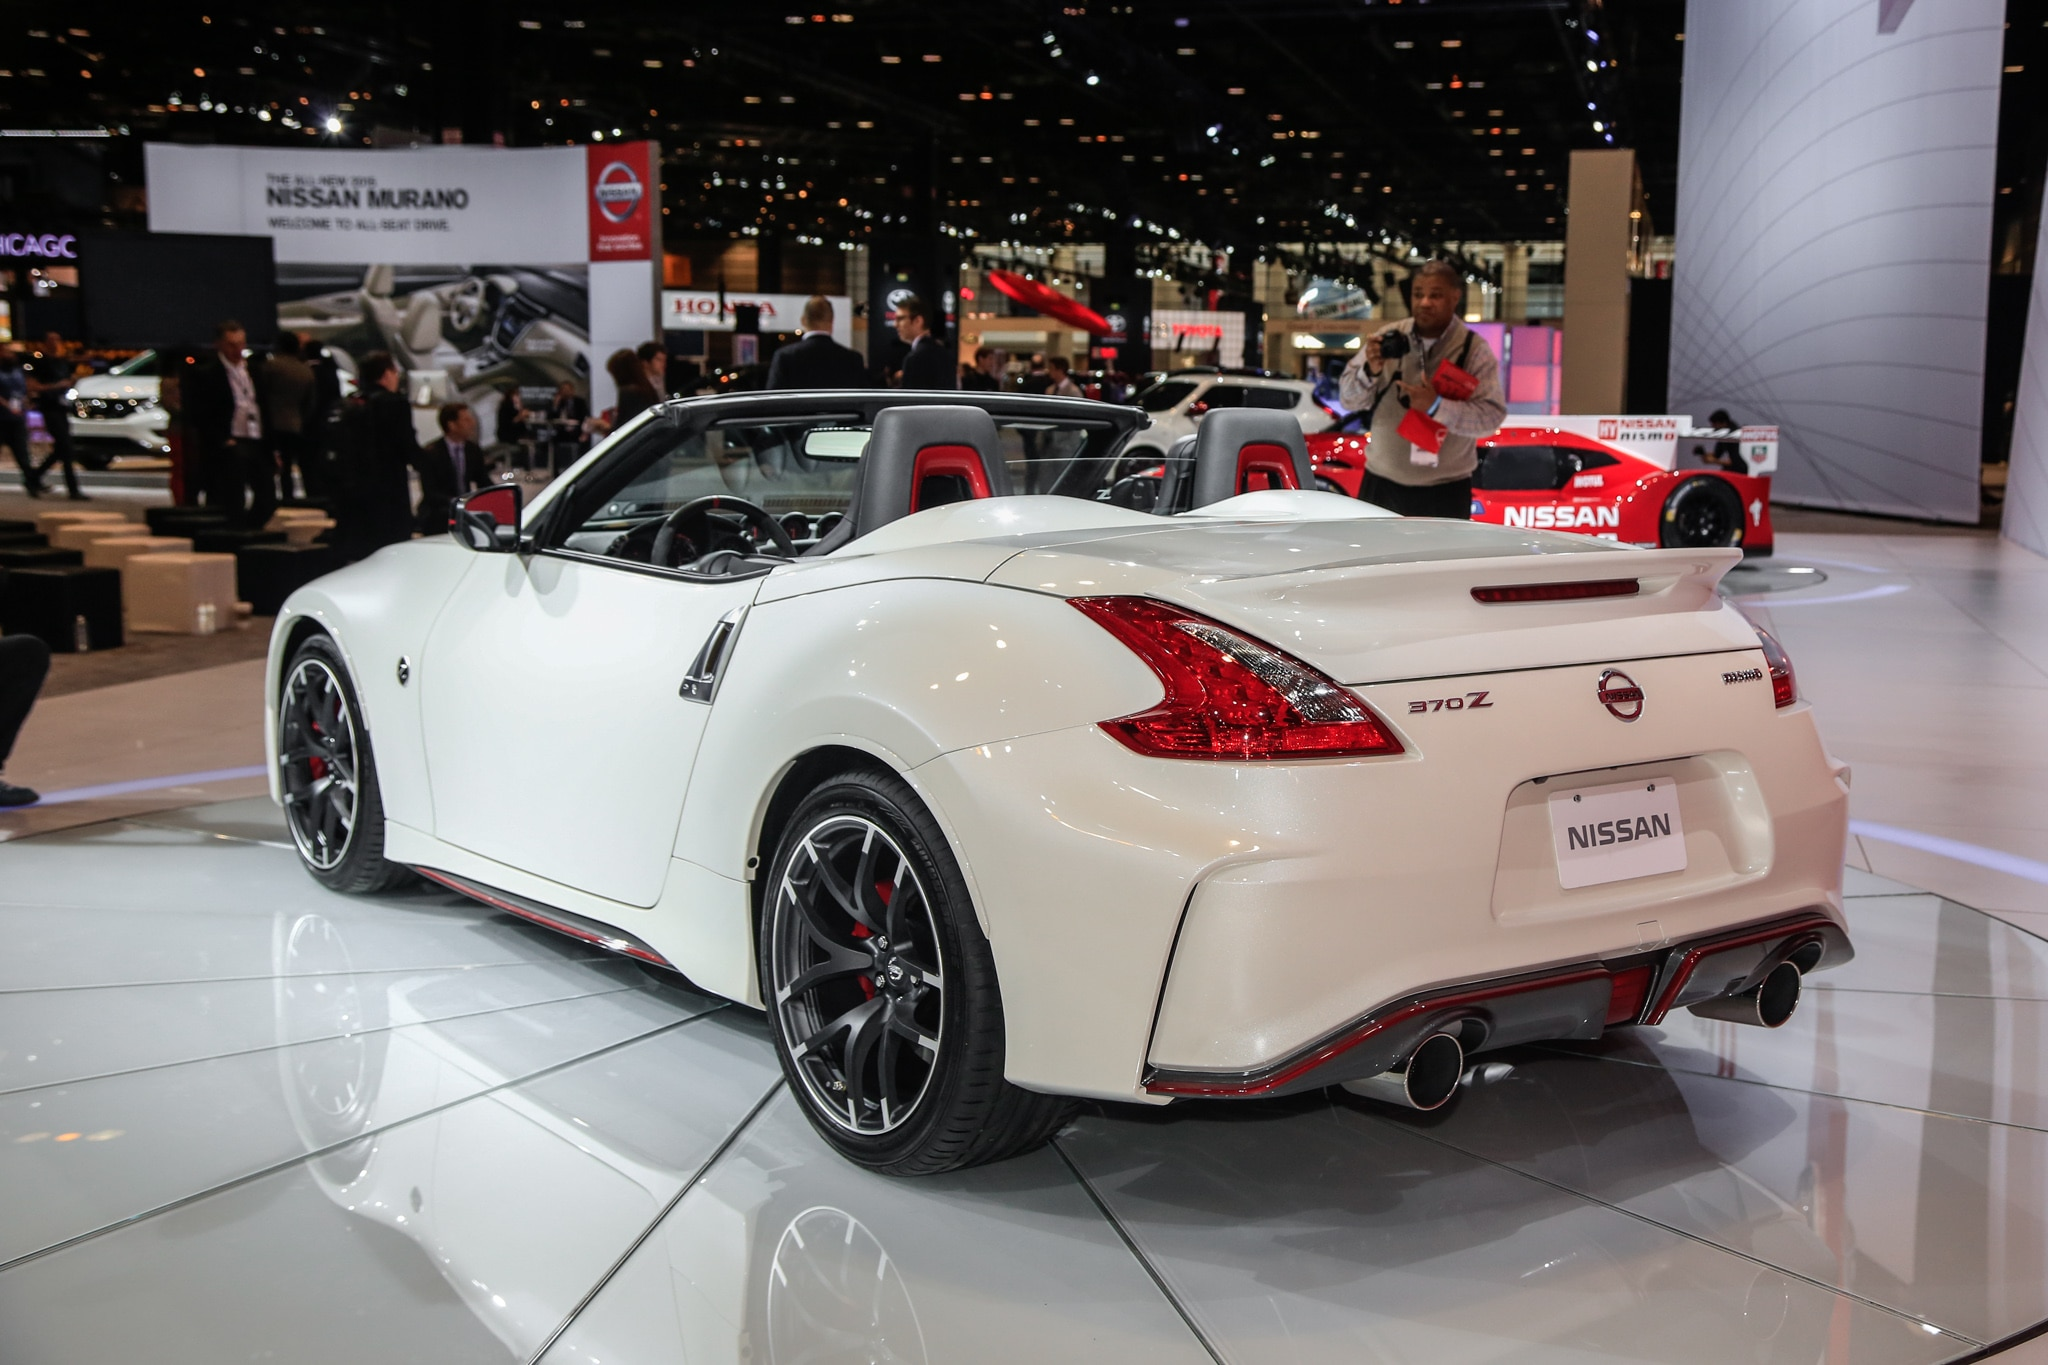 Nissan 370z Nismo Price >> Nissan 370Z Nismo Roadster Concept Drops Its Top in Chicago